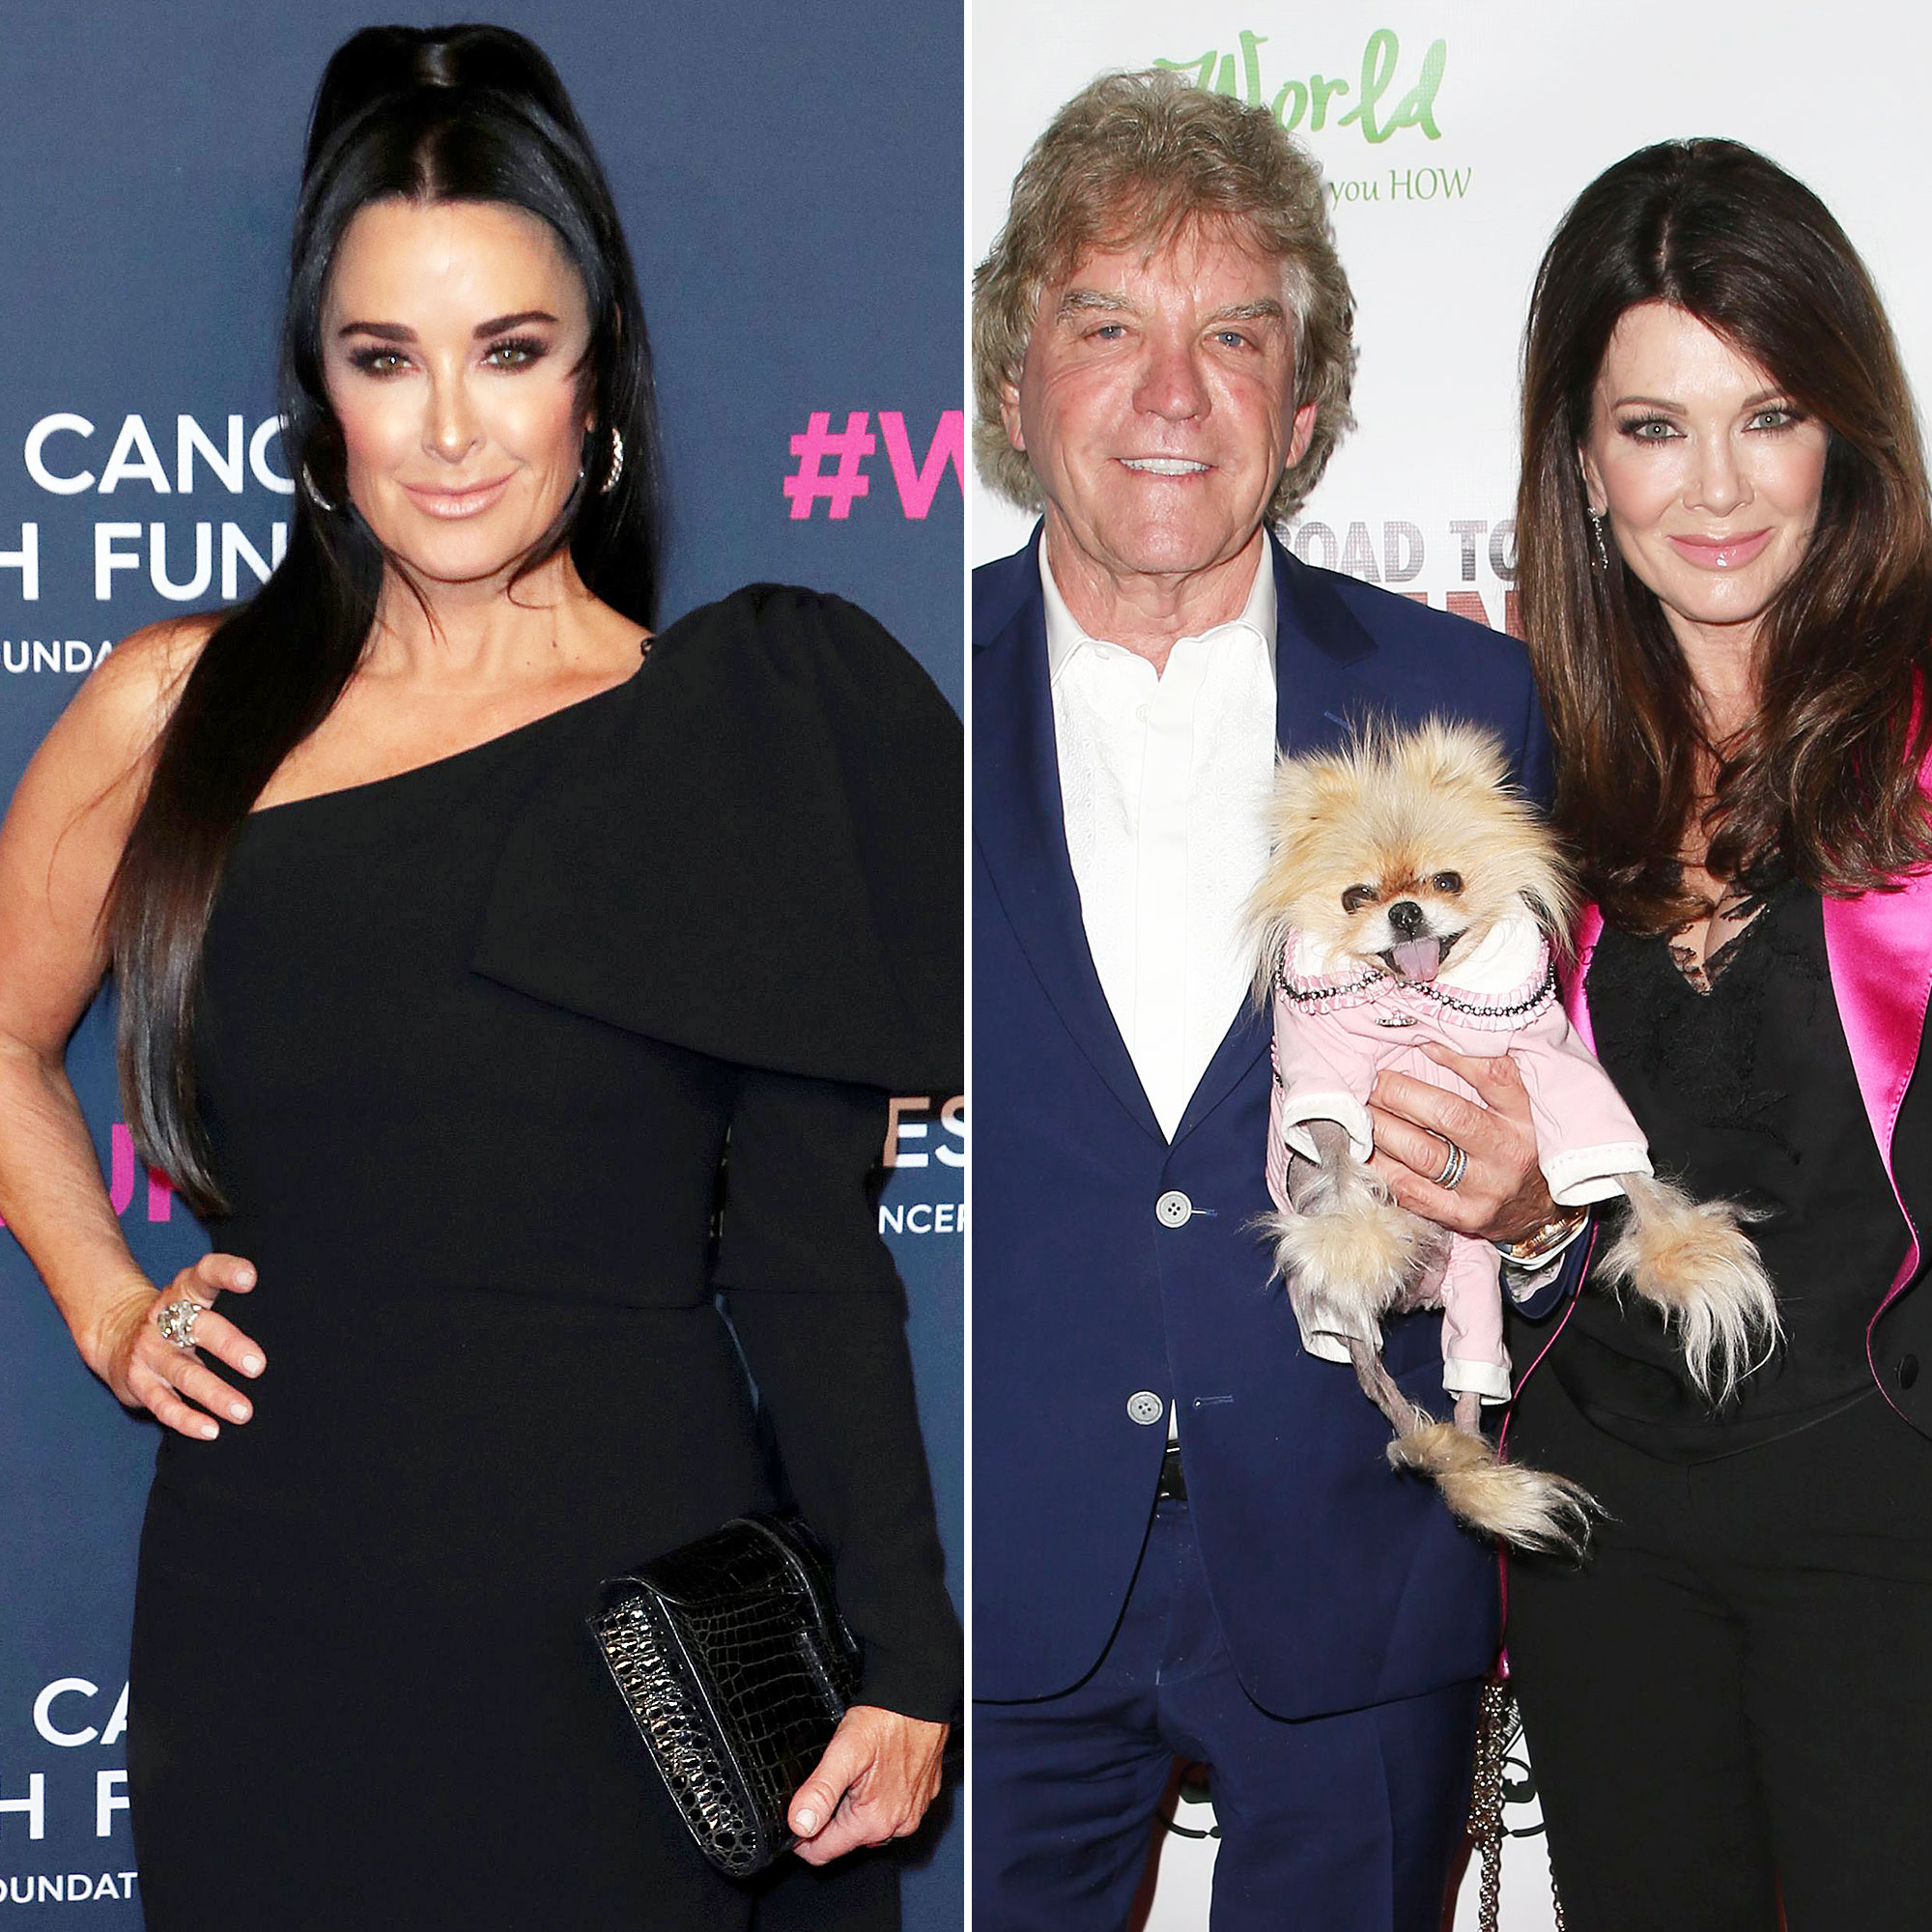 Kyle Richards Reveals She and Ken Todd Hugged During Most Recent Run-In With Lisa Vanderpump